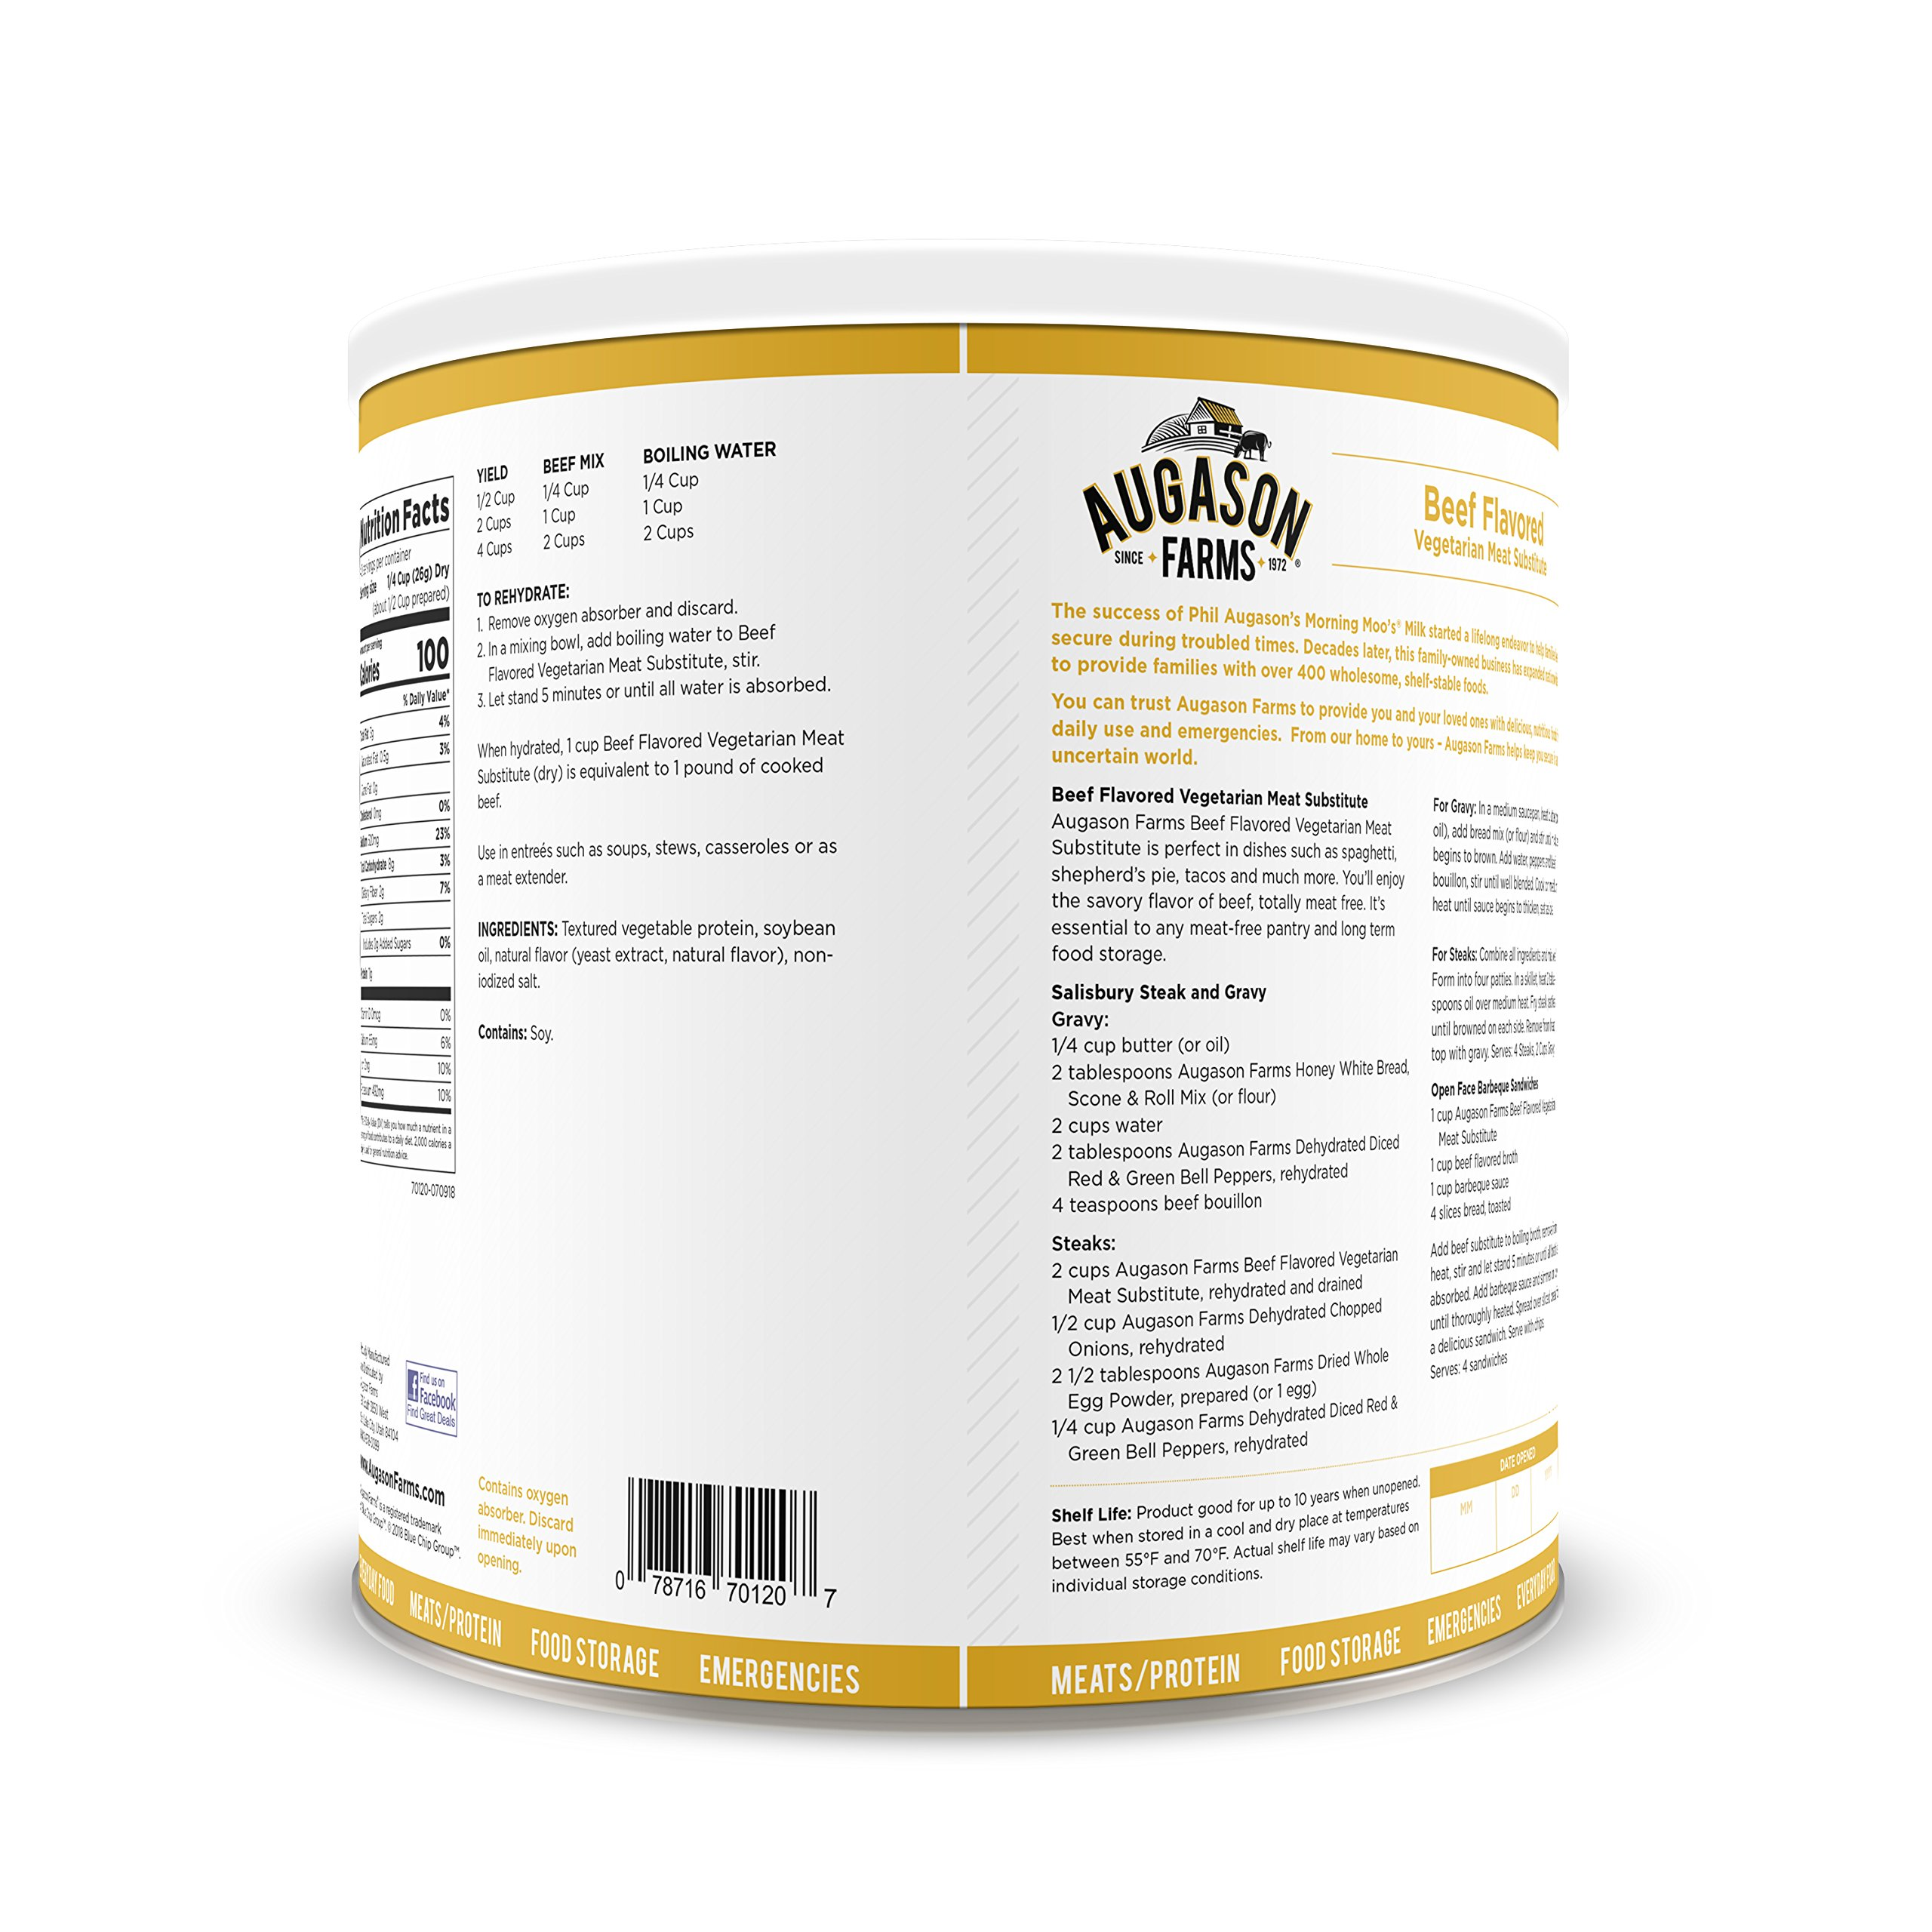 Augason Farms Beef Flavored Vegetarian Meat Substitute 2 lbs 5 oz No. 10 Can by Augason Farms (Image #2)